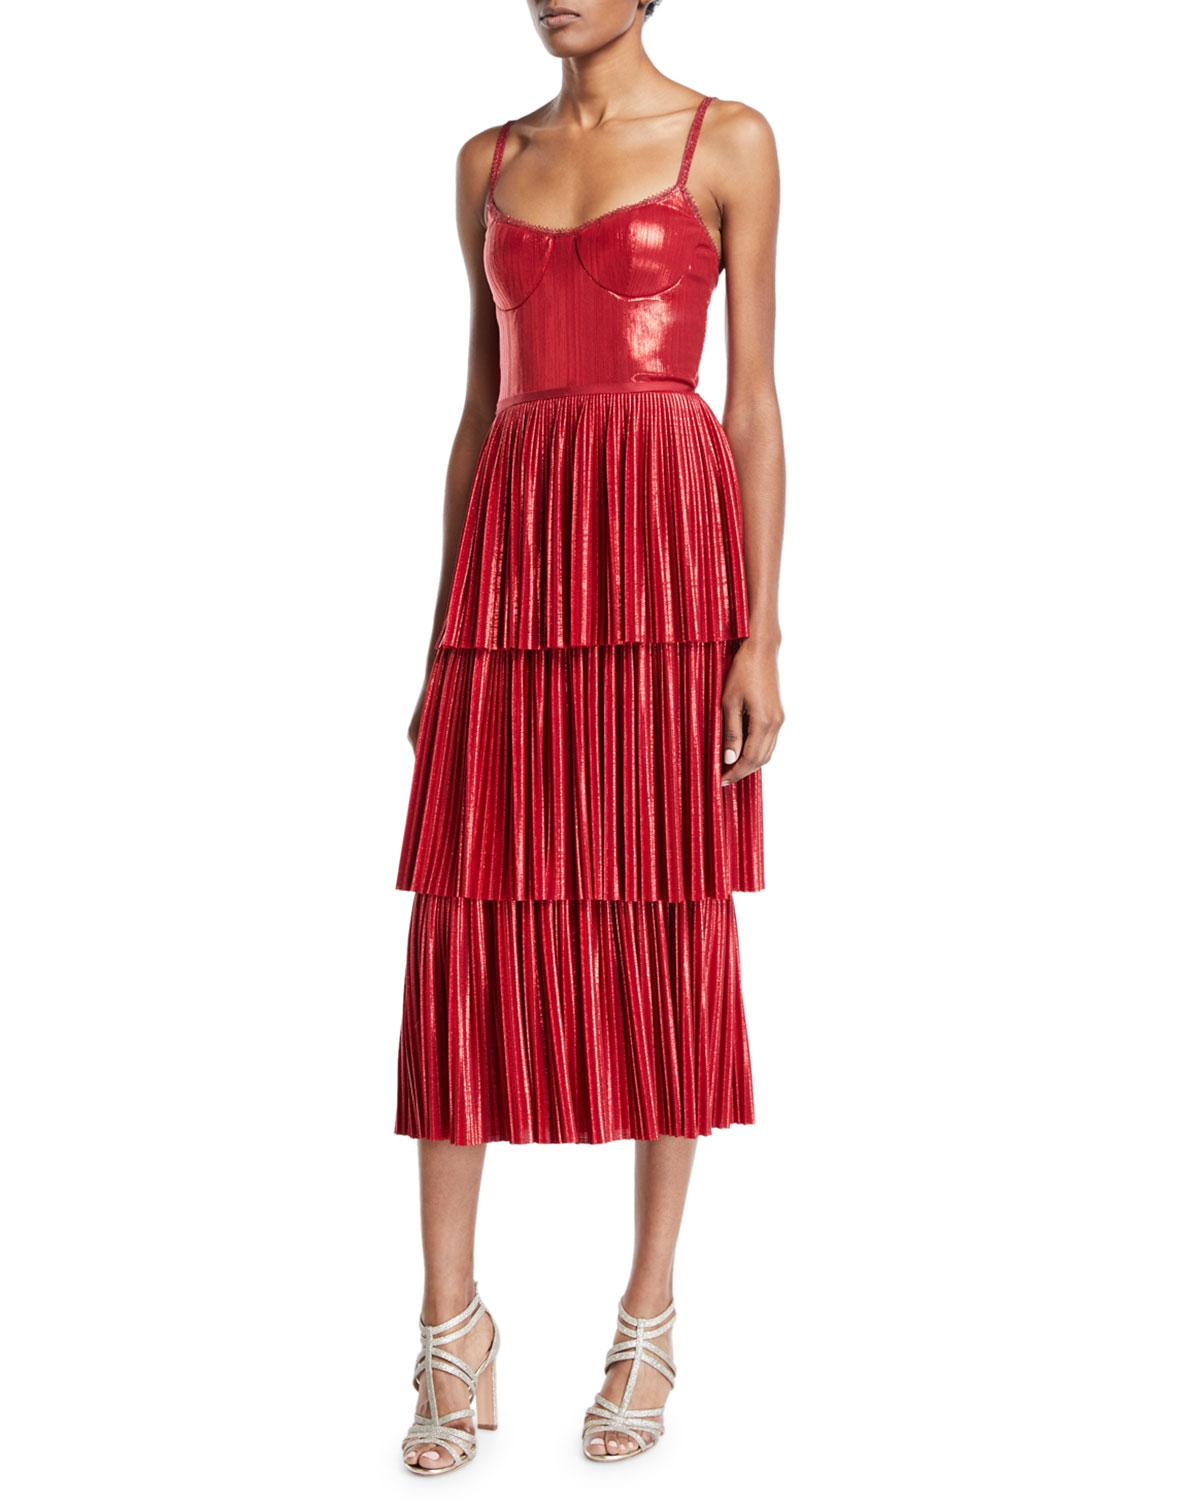 6adc7450787 Marchesa notte - Pleated Lame Tiered Cocktail Dress W  Metallic Trims -  Lyst. View fullscreen